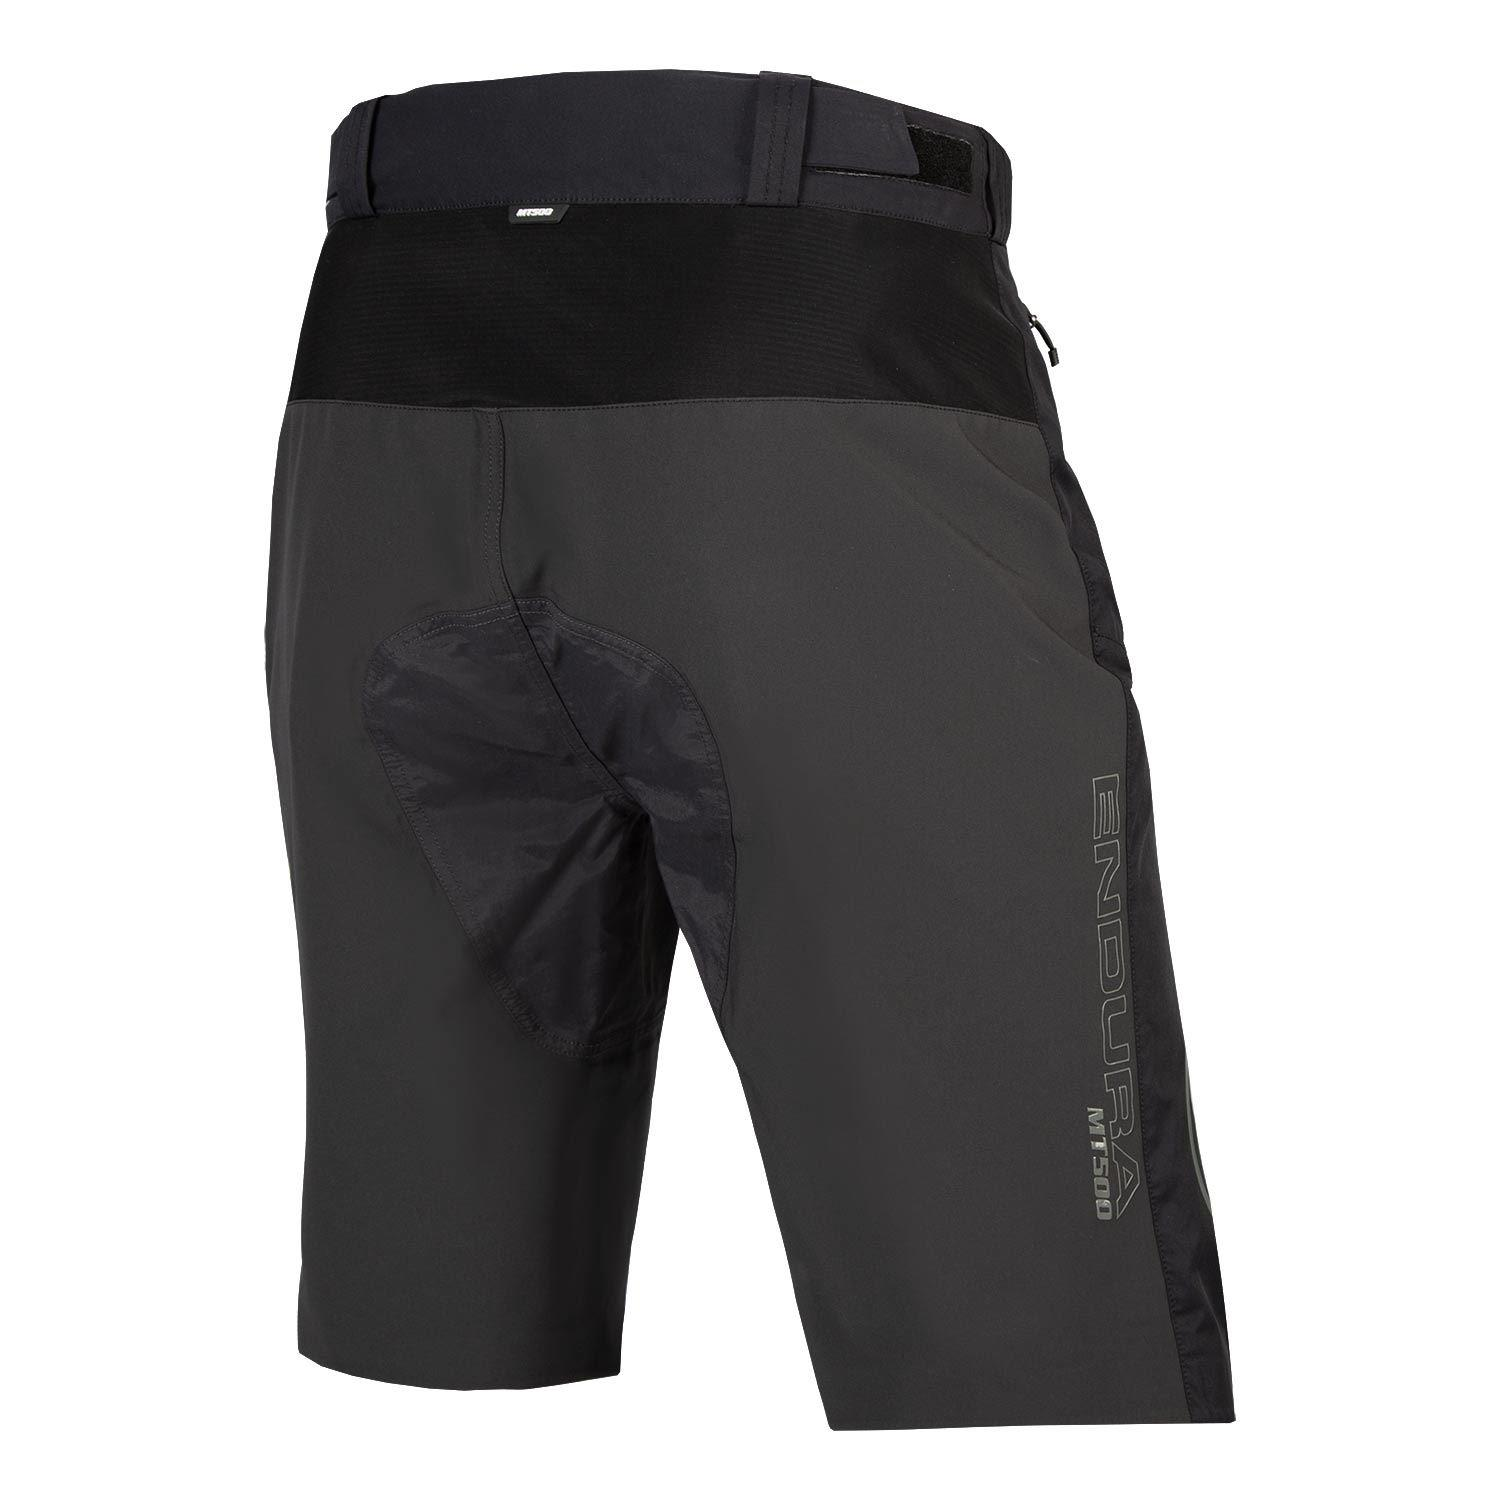 Endura MTB fietsbroek kort waterafstotend Heren Zwart - MT500 Spray Short Zwart